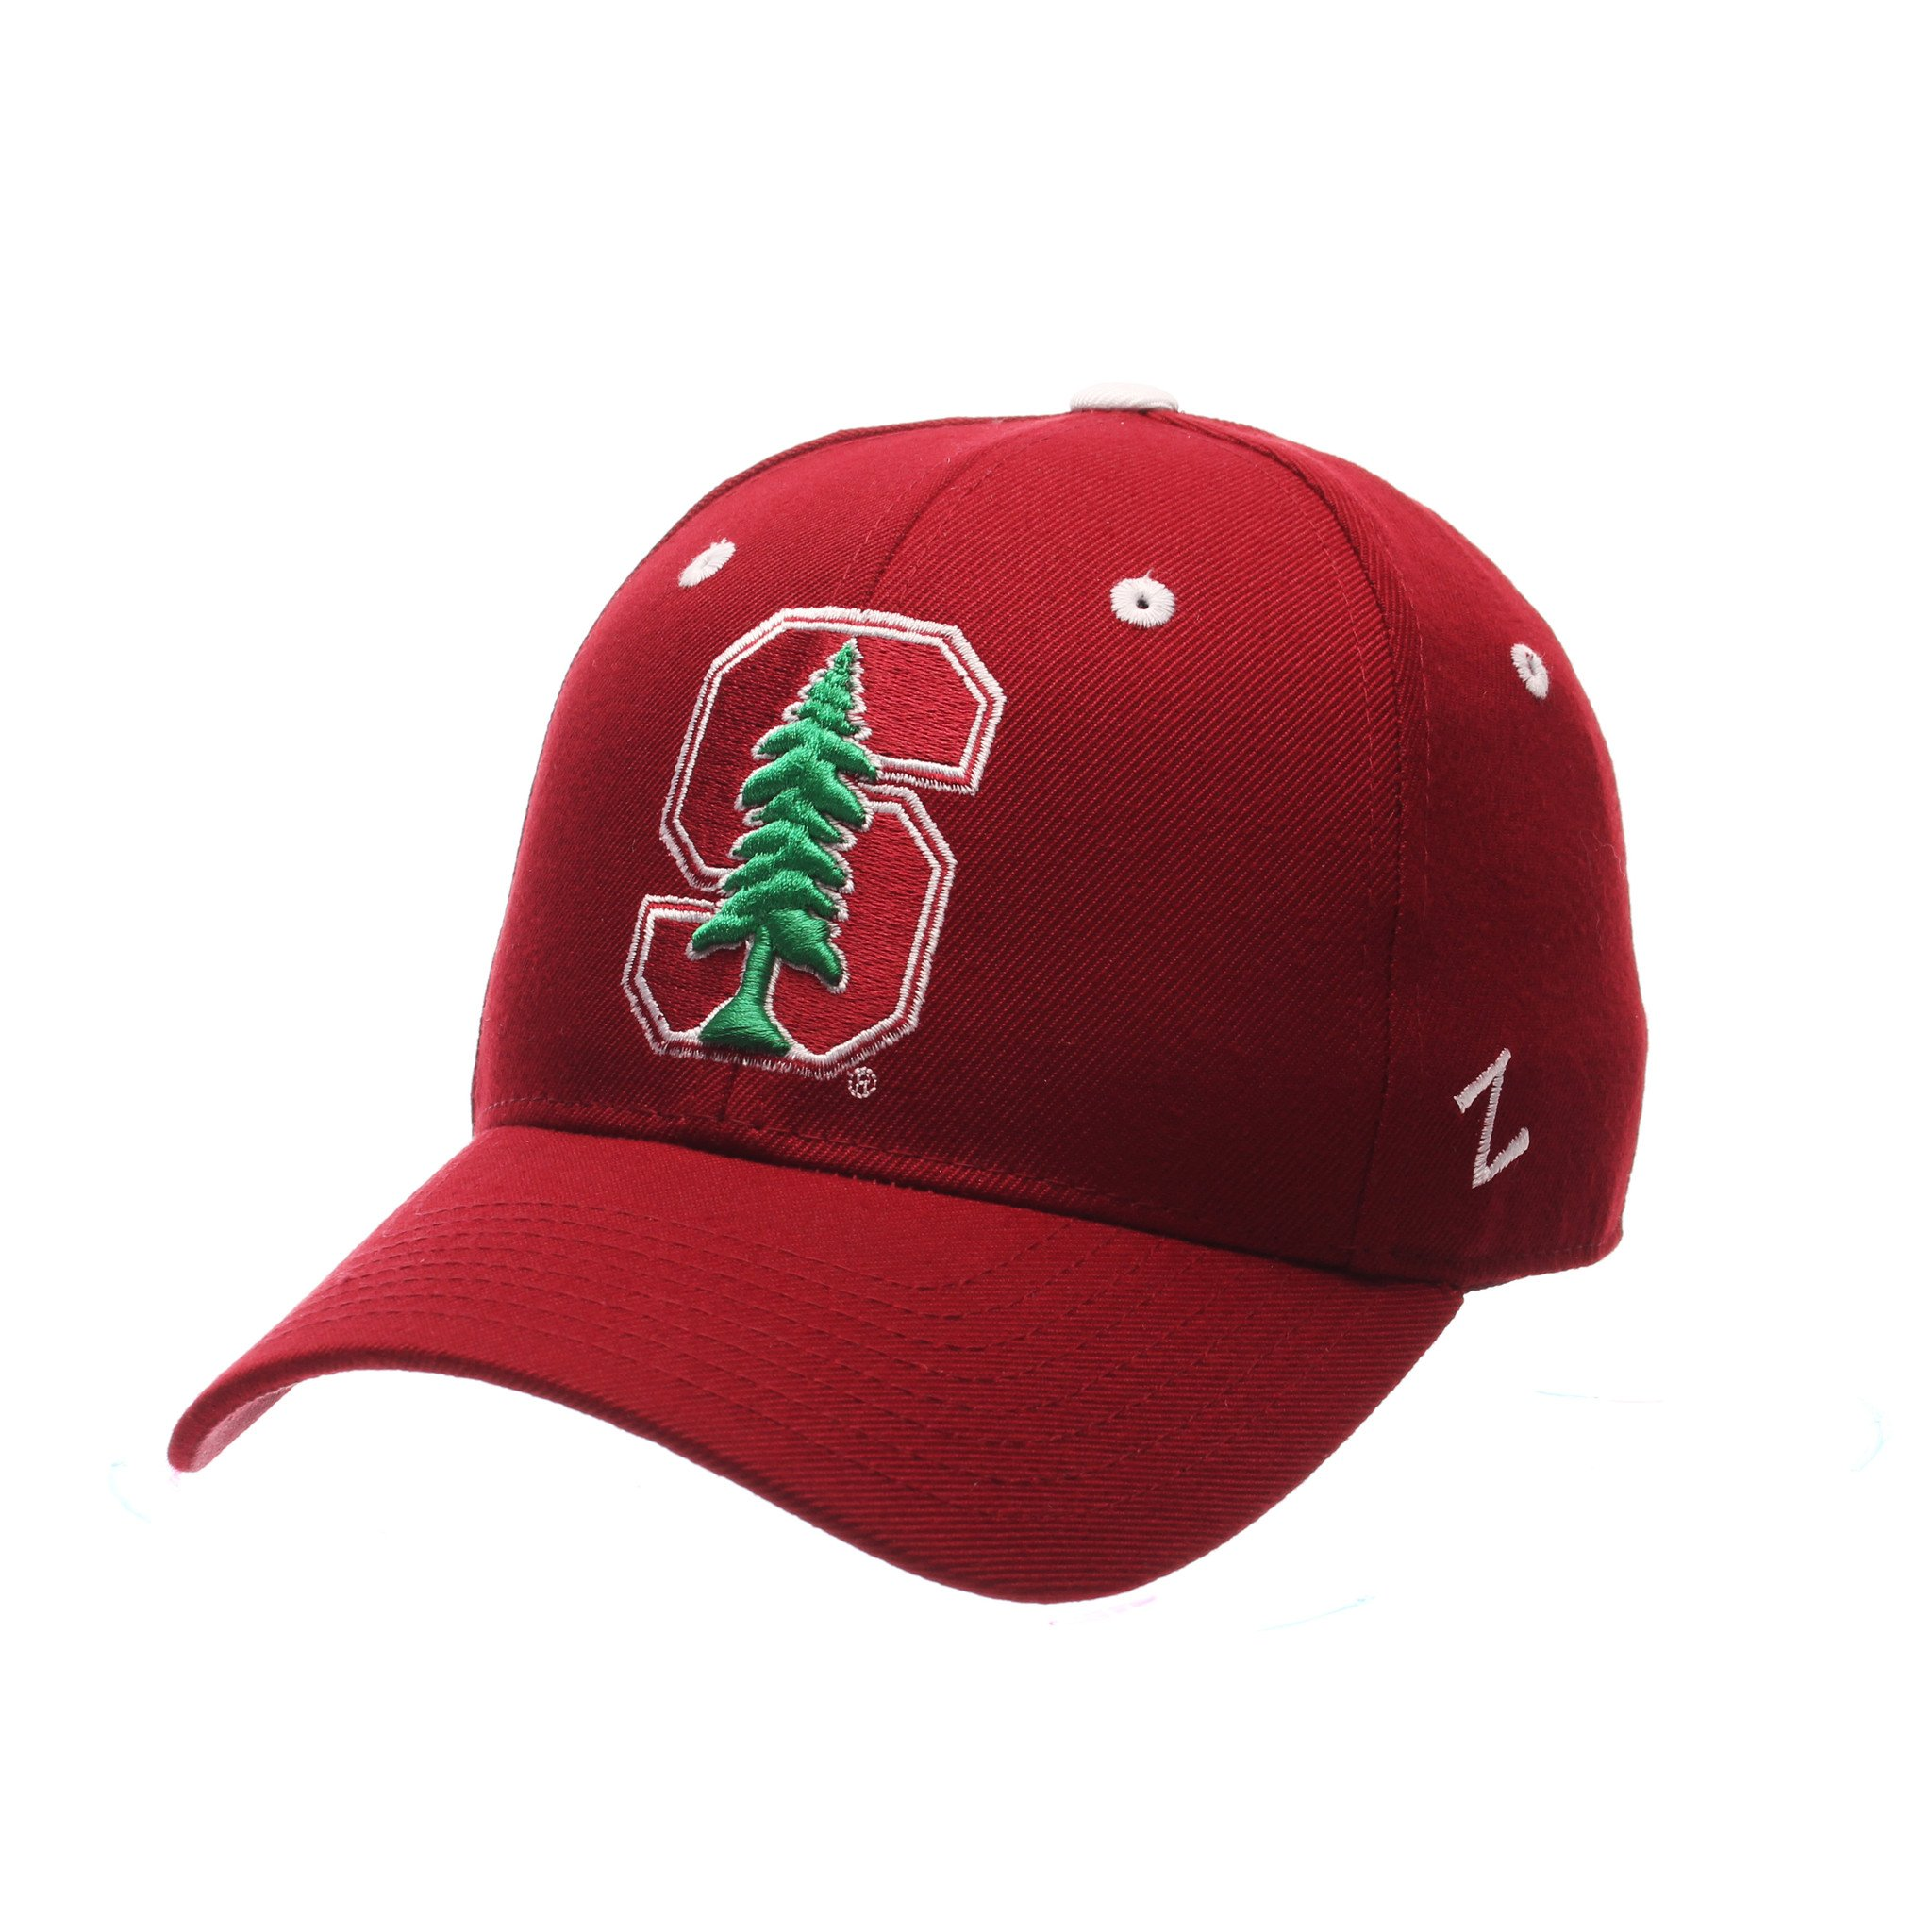 new product 3ce8a 458b0 ... promo code for stanford cardinal official ncaa dhs size 7 fitted hat cap  by zephyr 564172